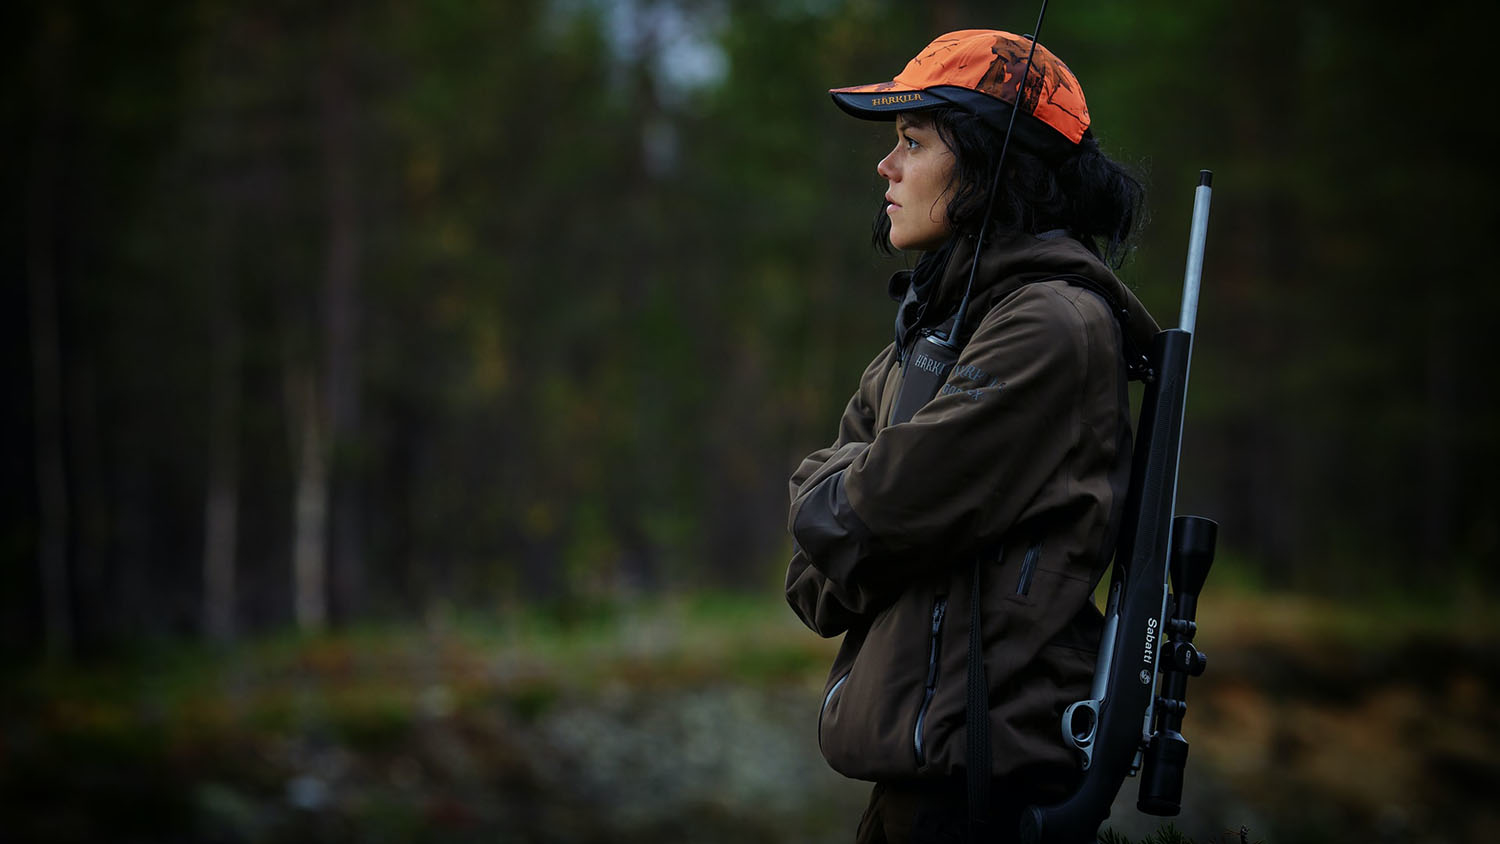 woman in hunting attire stands with rifle